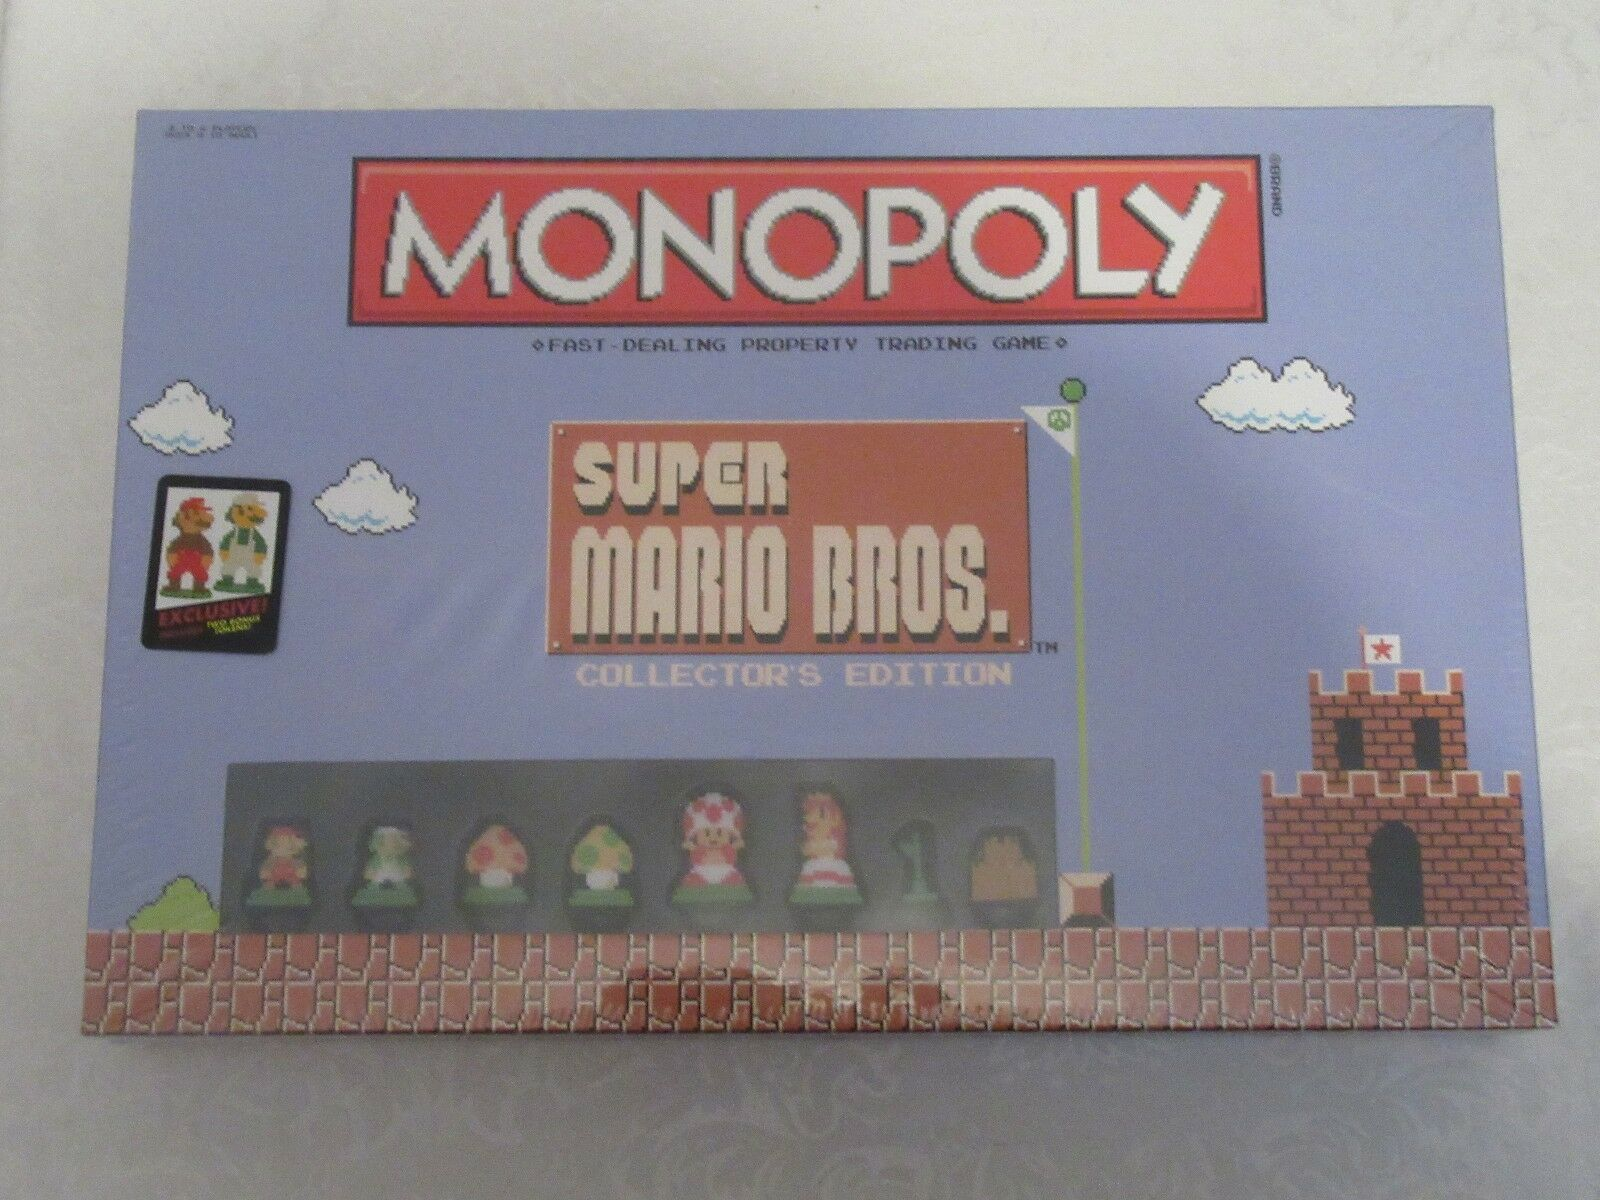 Monopoly Super Mario Bros Collector's Edition Gamestop Exclusive Two Bonus Token